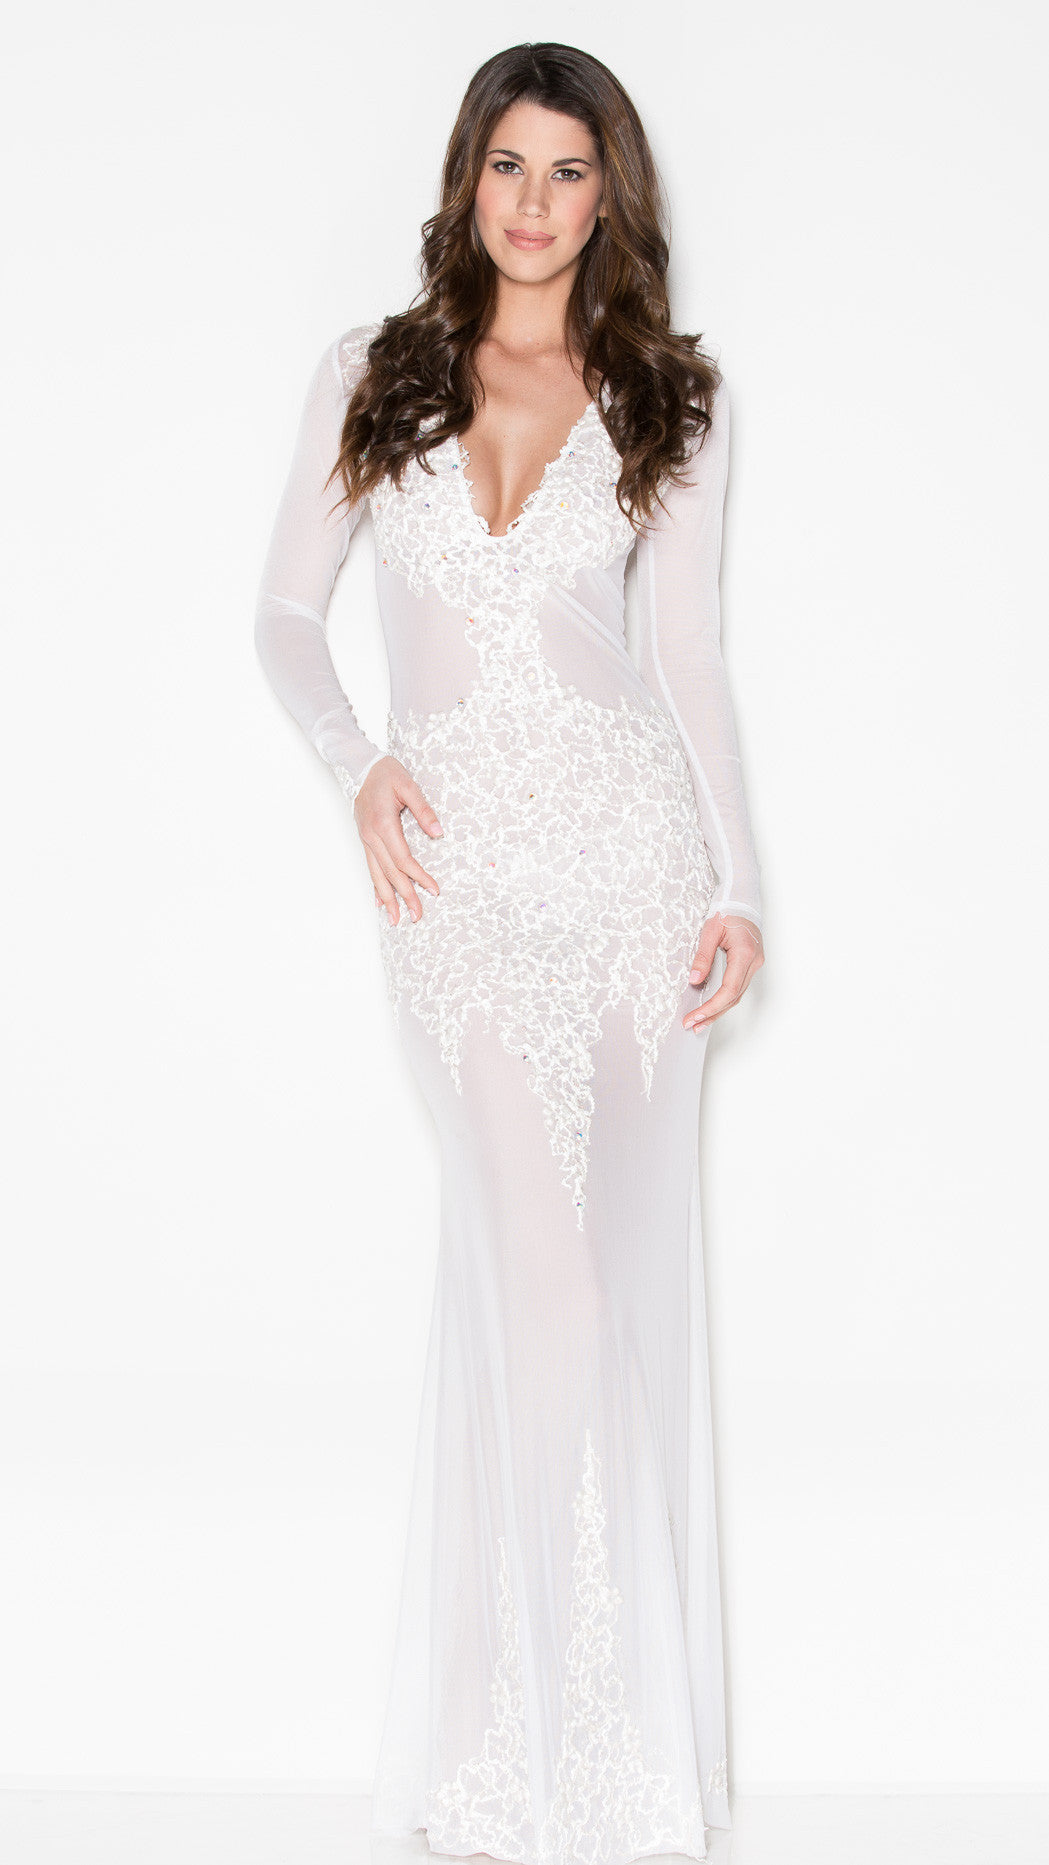 BEYONCE GOWN IN WHITE - HOLT